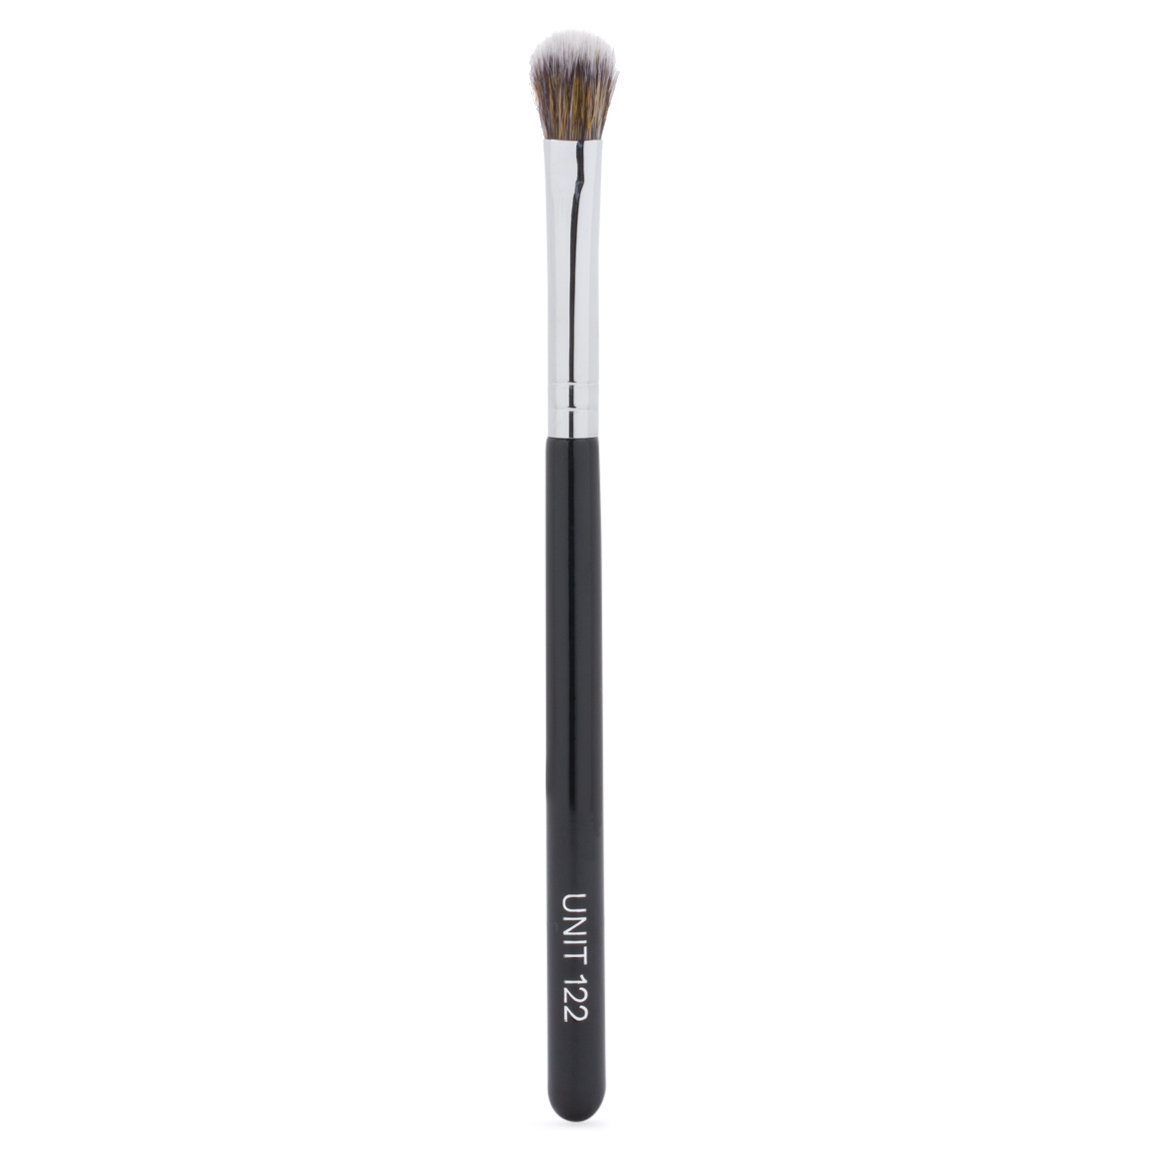 UNIT 122 Eye Brush